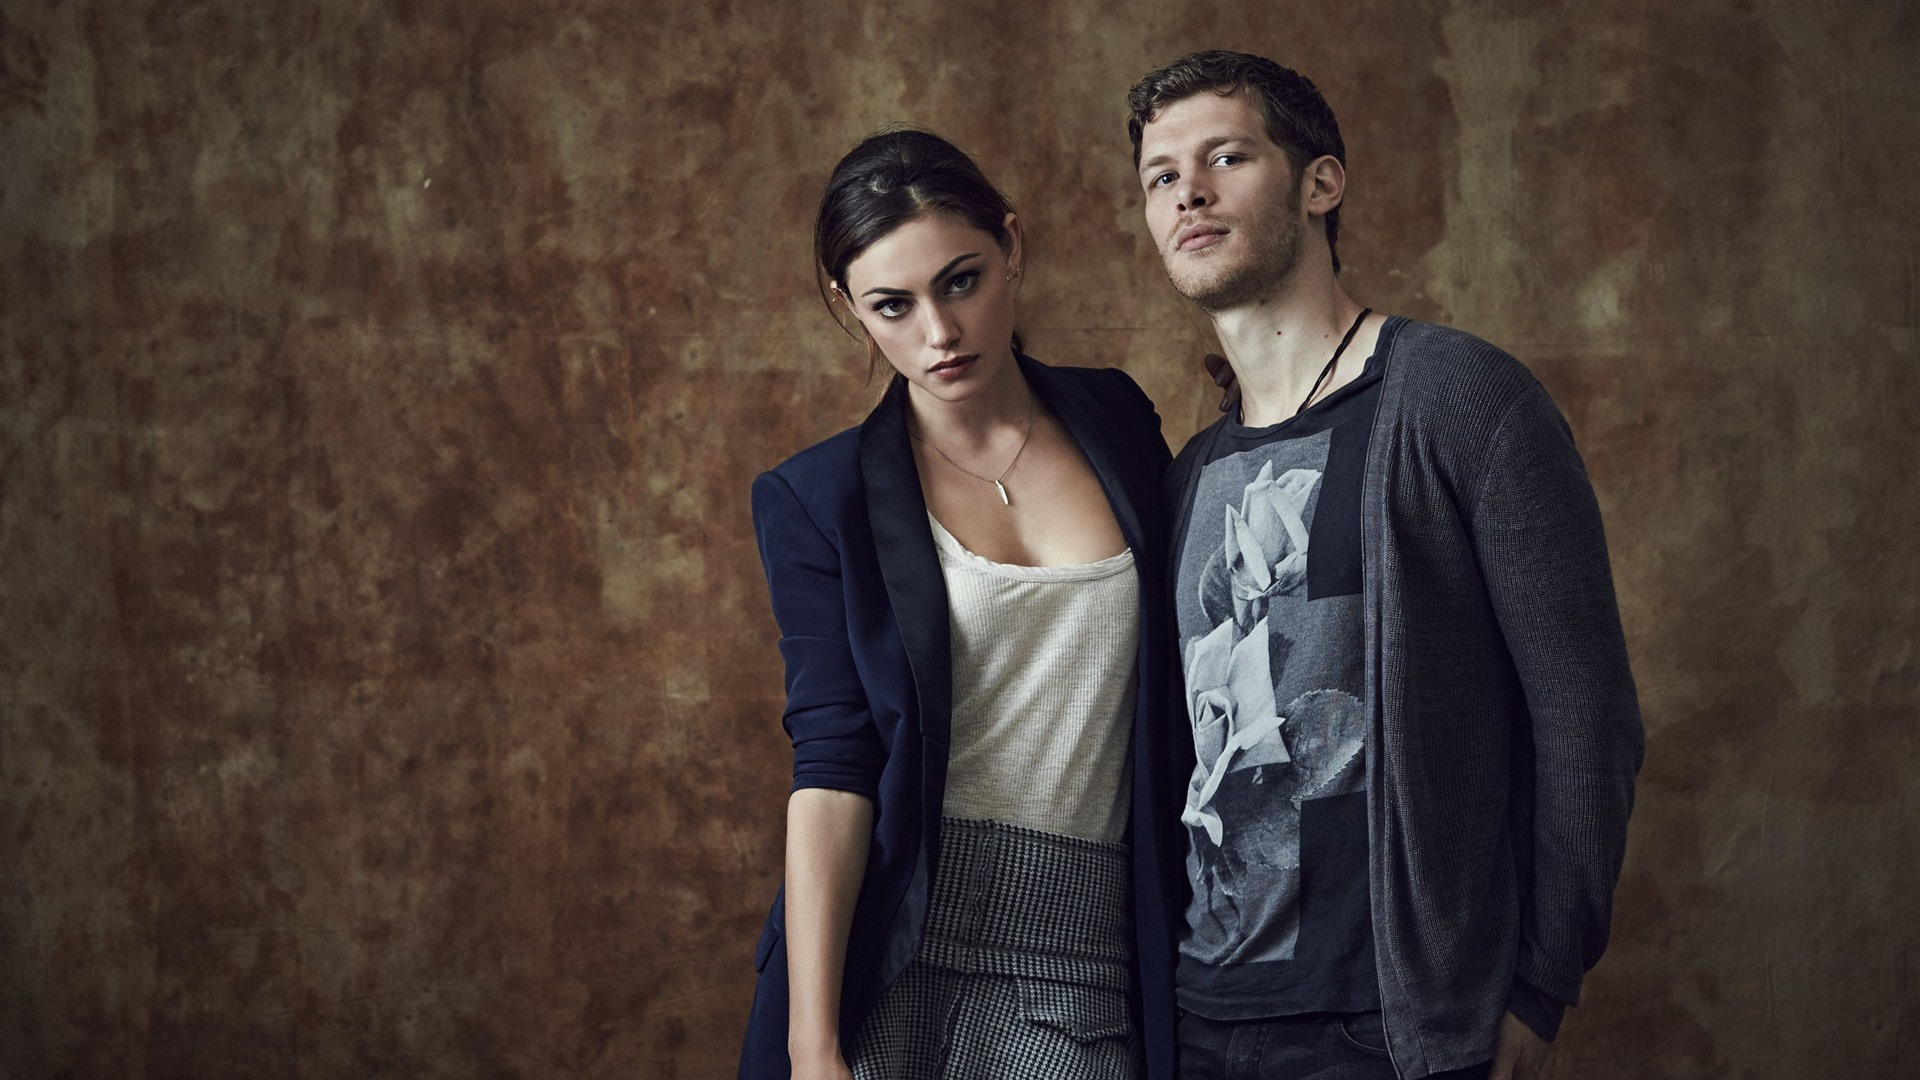 Wallpaper Joseph Morgan Phoebe Tonkin 2880x1800 Hd Picture